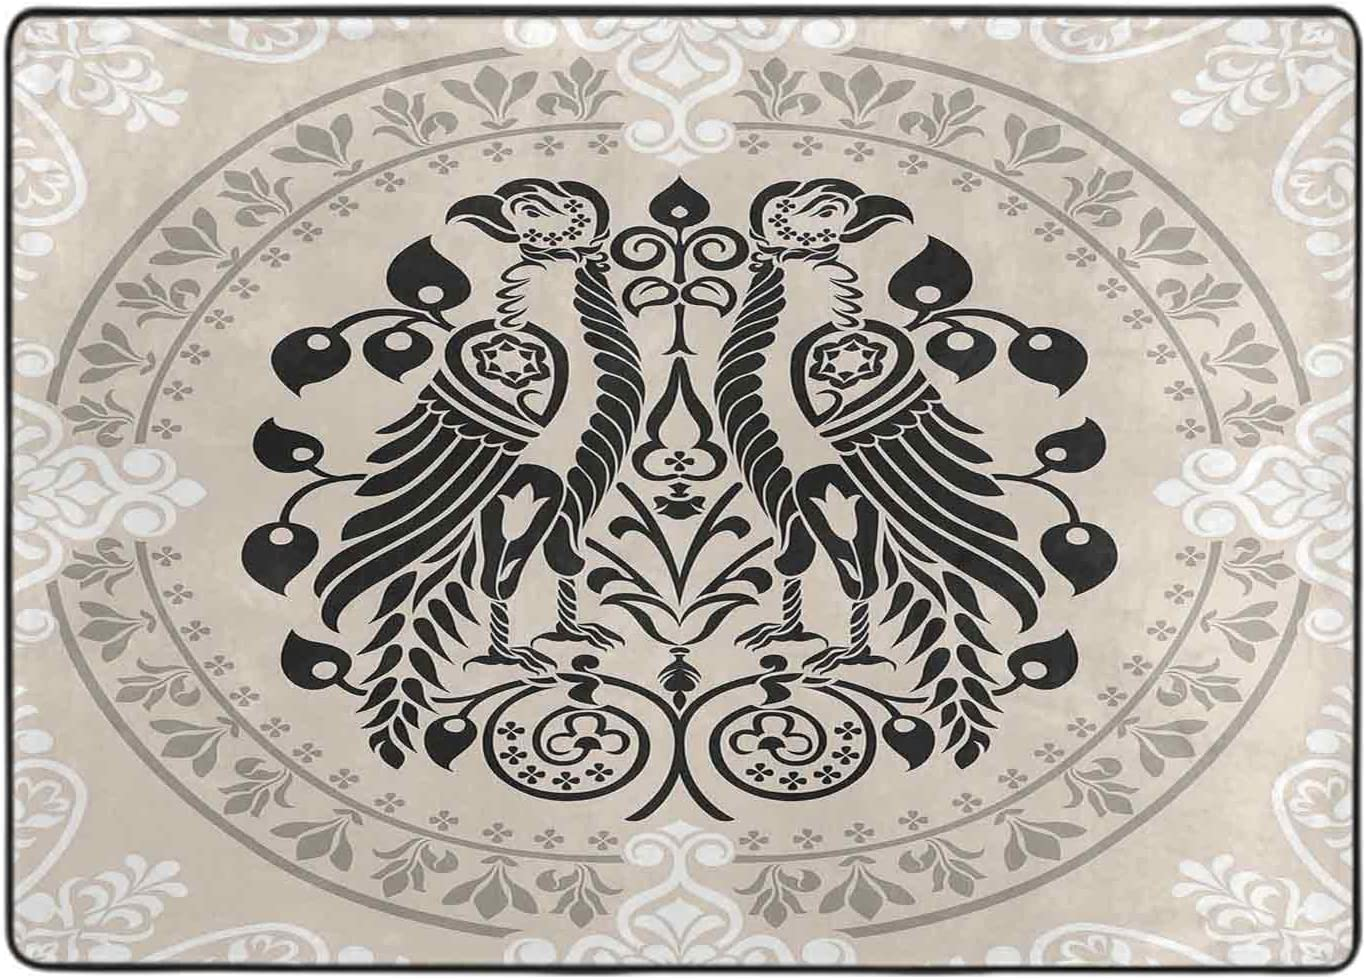 Carpets for Living Cash special price Room Large special price Heraldic Birds Floral Damask with Eagle